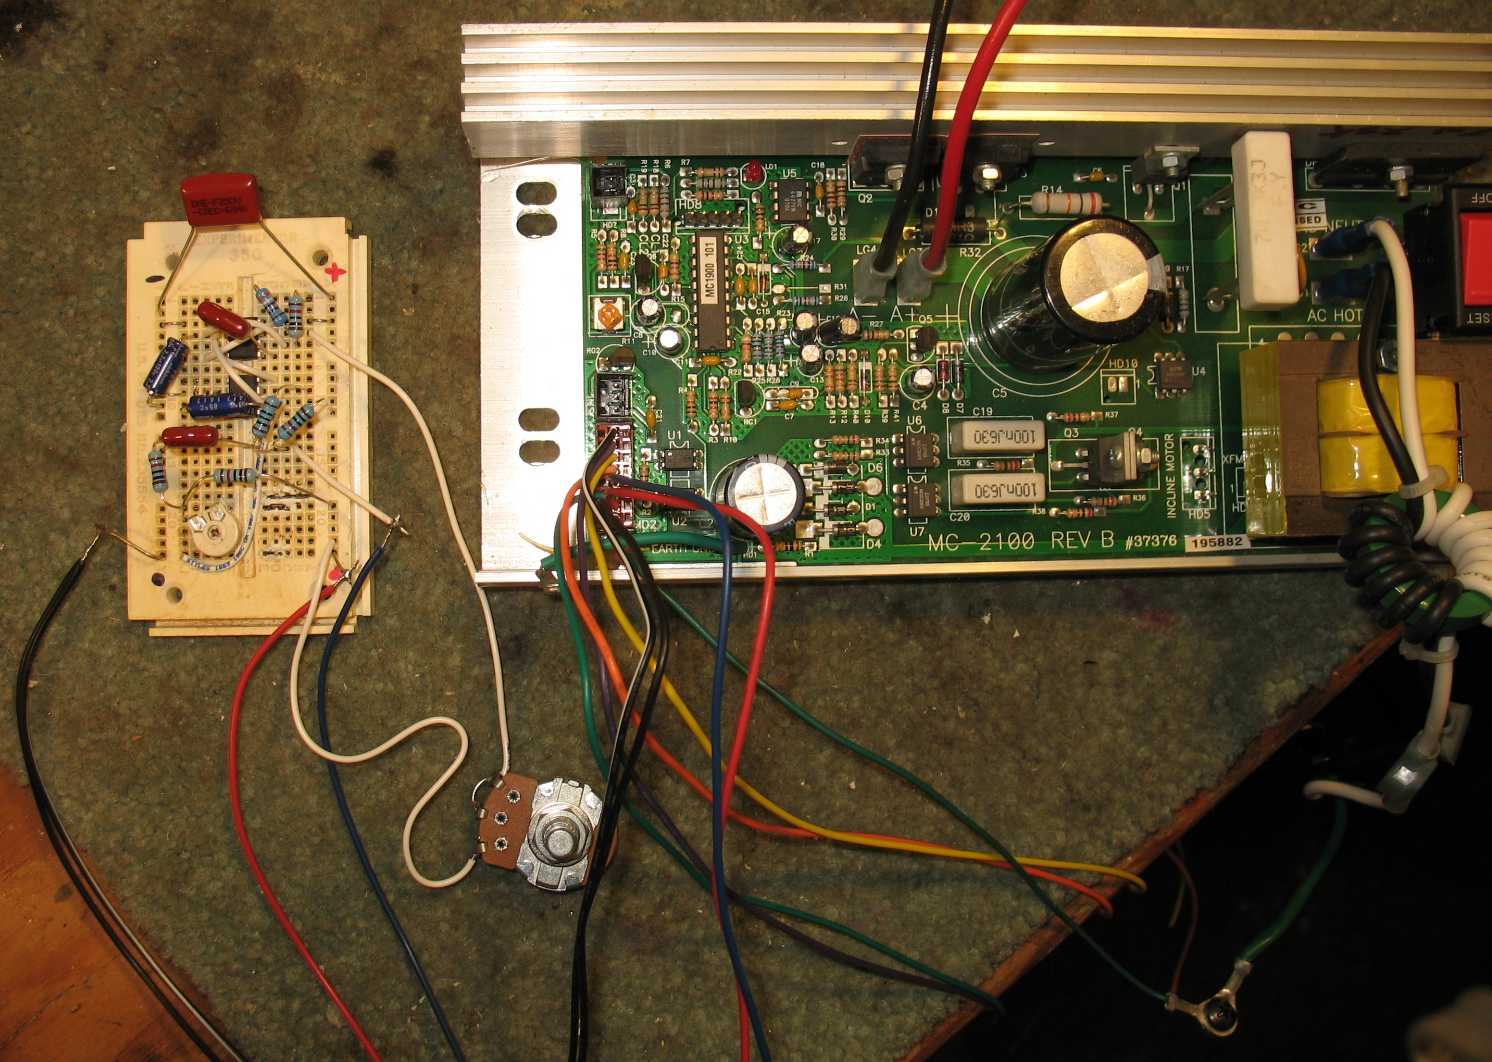 Mc 2100 Motor Controller Sons Of Invention Analog Integrated Circuits Batteries Not Needed The Mitre Doug 927 Am On October 30 2015 Permalink Reply